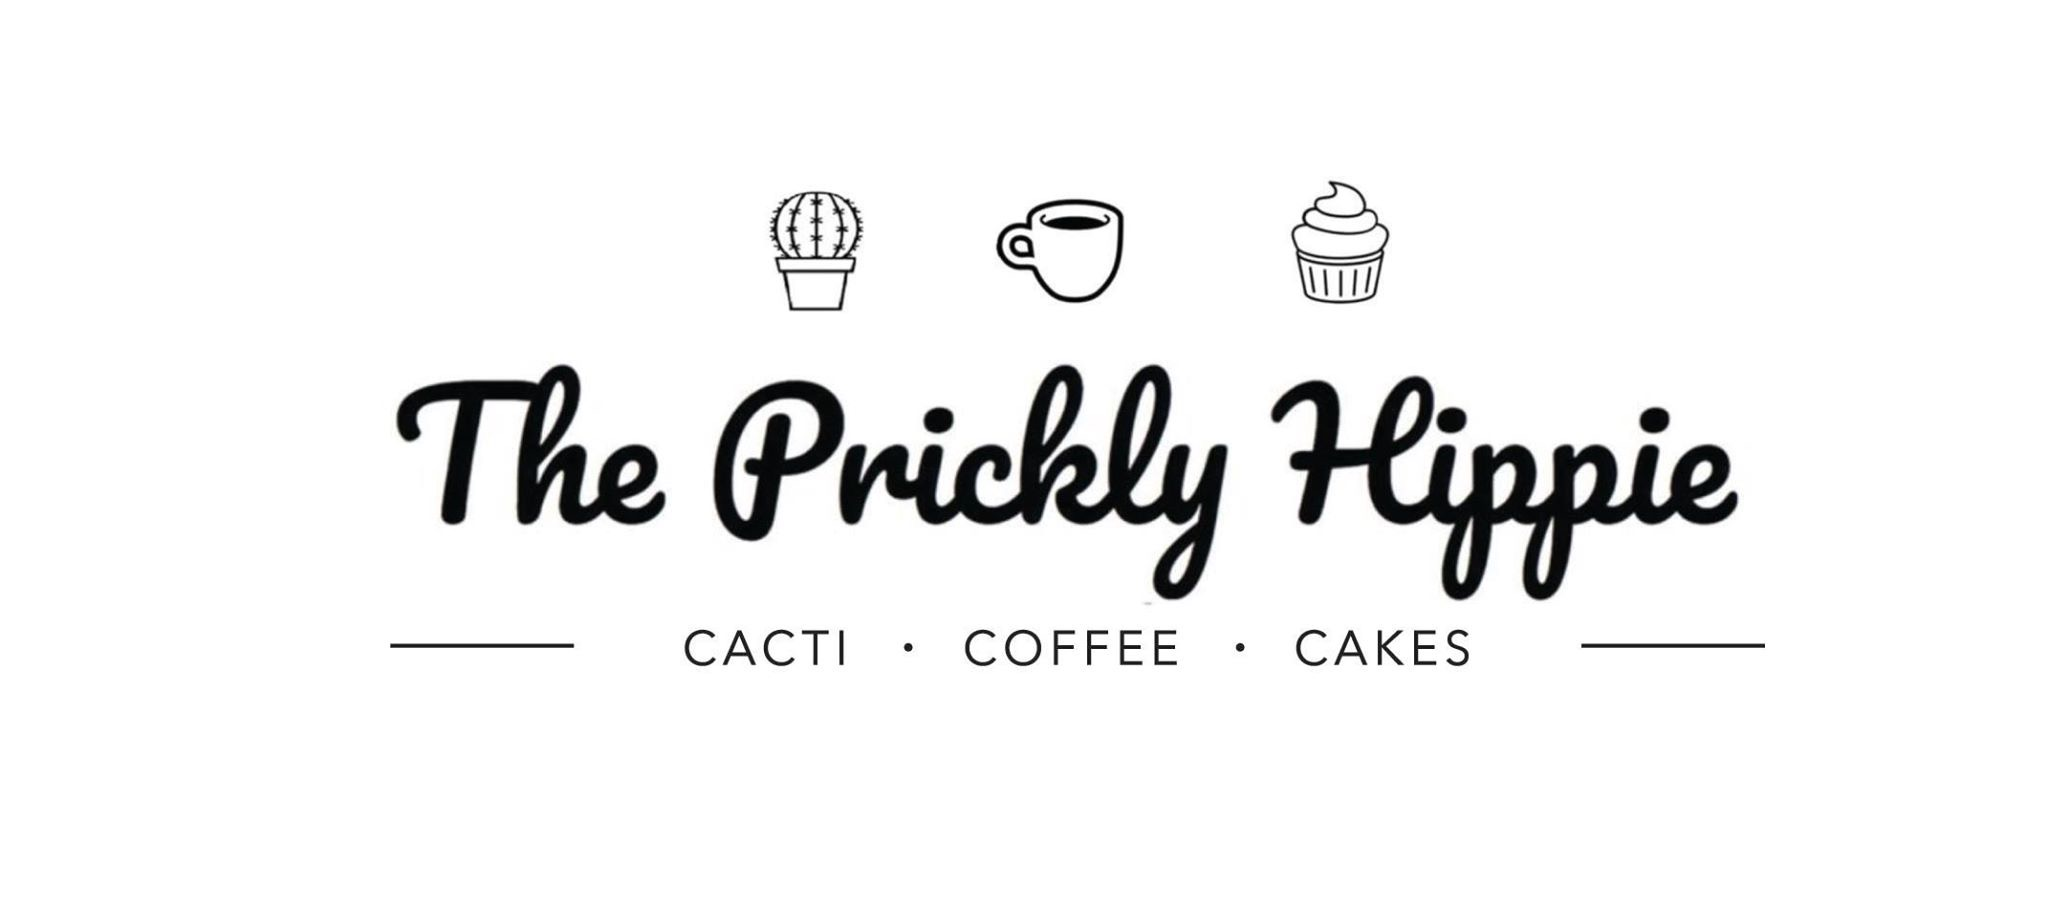 The Prickly Hippie